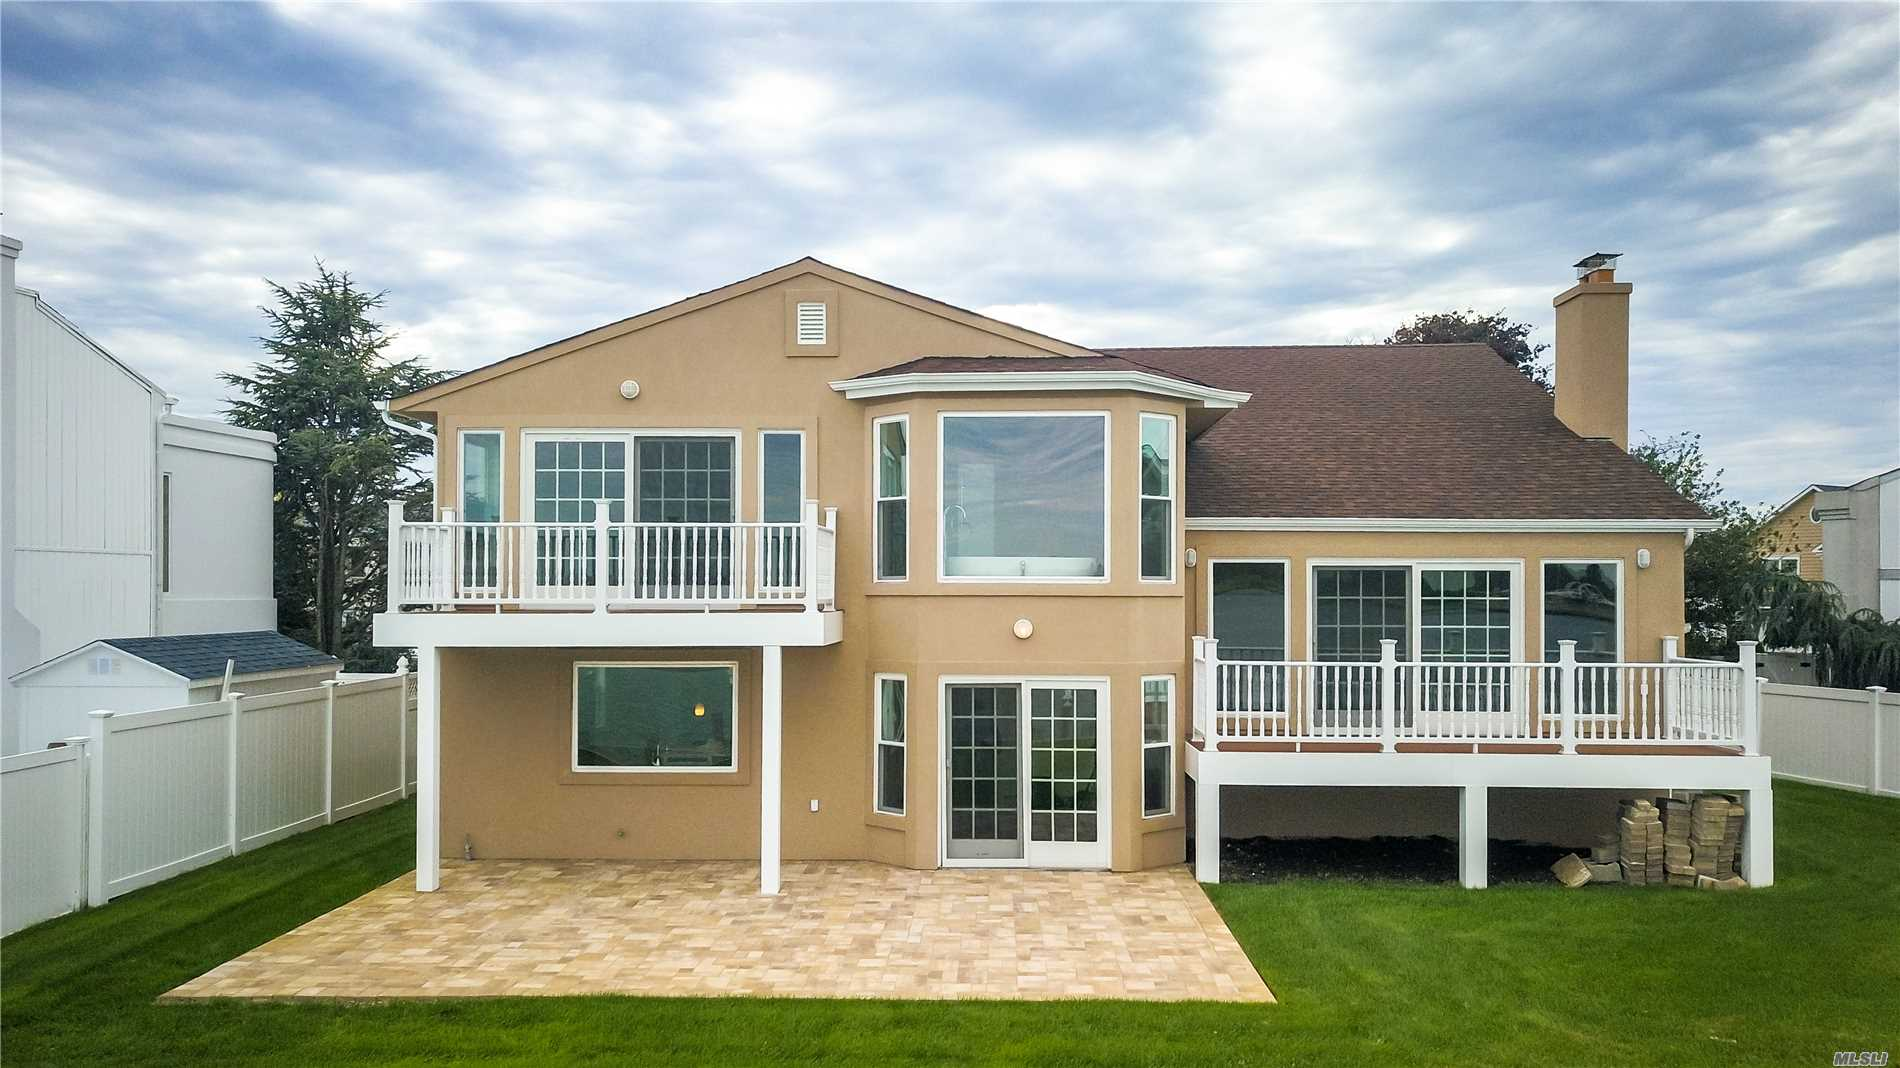 Welcome To Your Permanent Vacation Home! Breathtaking Waterfront Views In A Private Cul De Sac On The Best Block In The Neighborhood! Better Than New, Gut Renovated, Only Thing Left Is The Foundation. Sprawling Open Layout W/ Chef's Kitchen, Designer Bath's, Waterfront Views On Every Floor!! Brand New Bulkhead, Builder Spared No Expense. Close To Schools, Parks, Restaurants, Shopping, & Much More! Must See!!